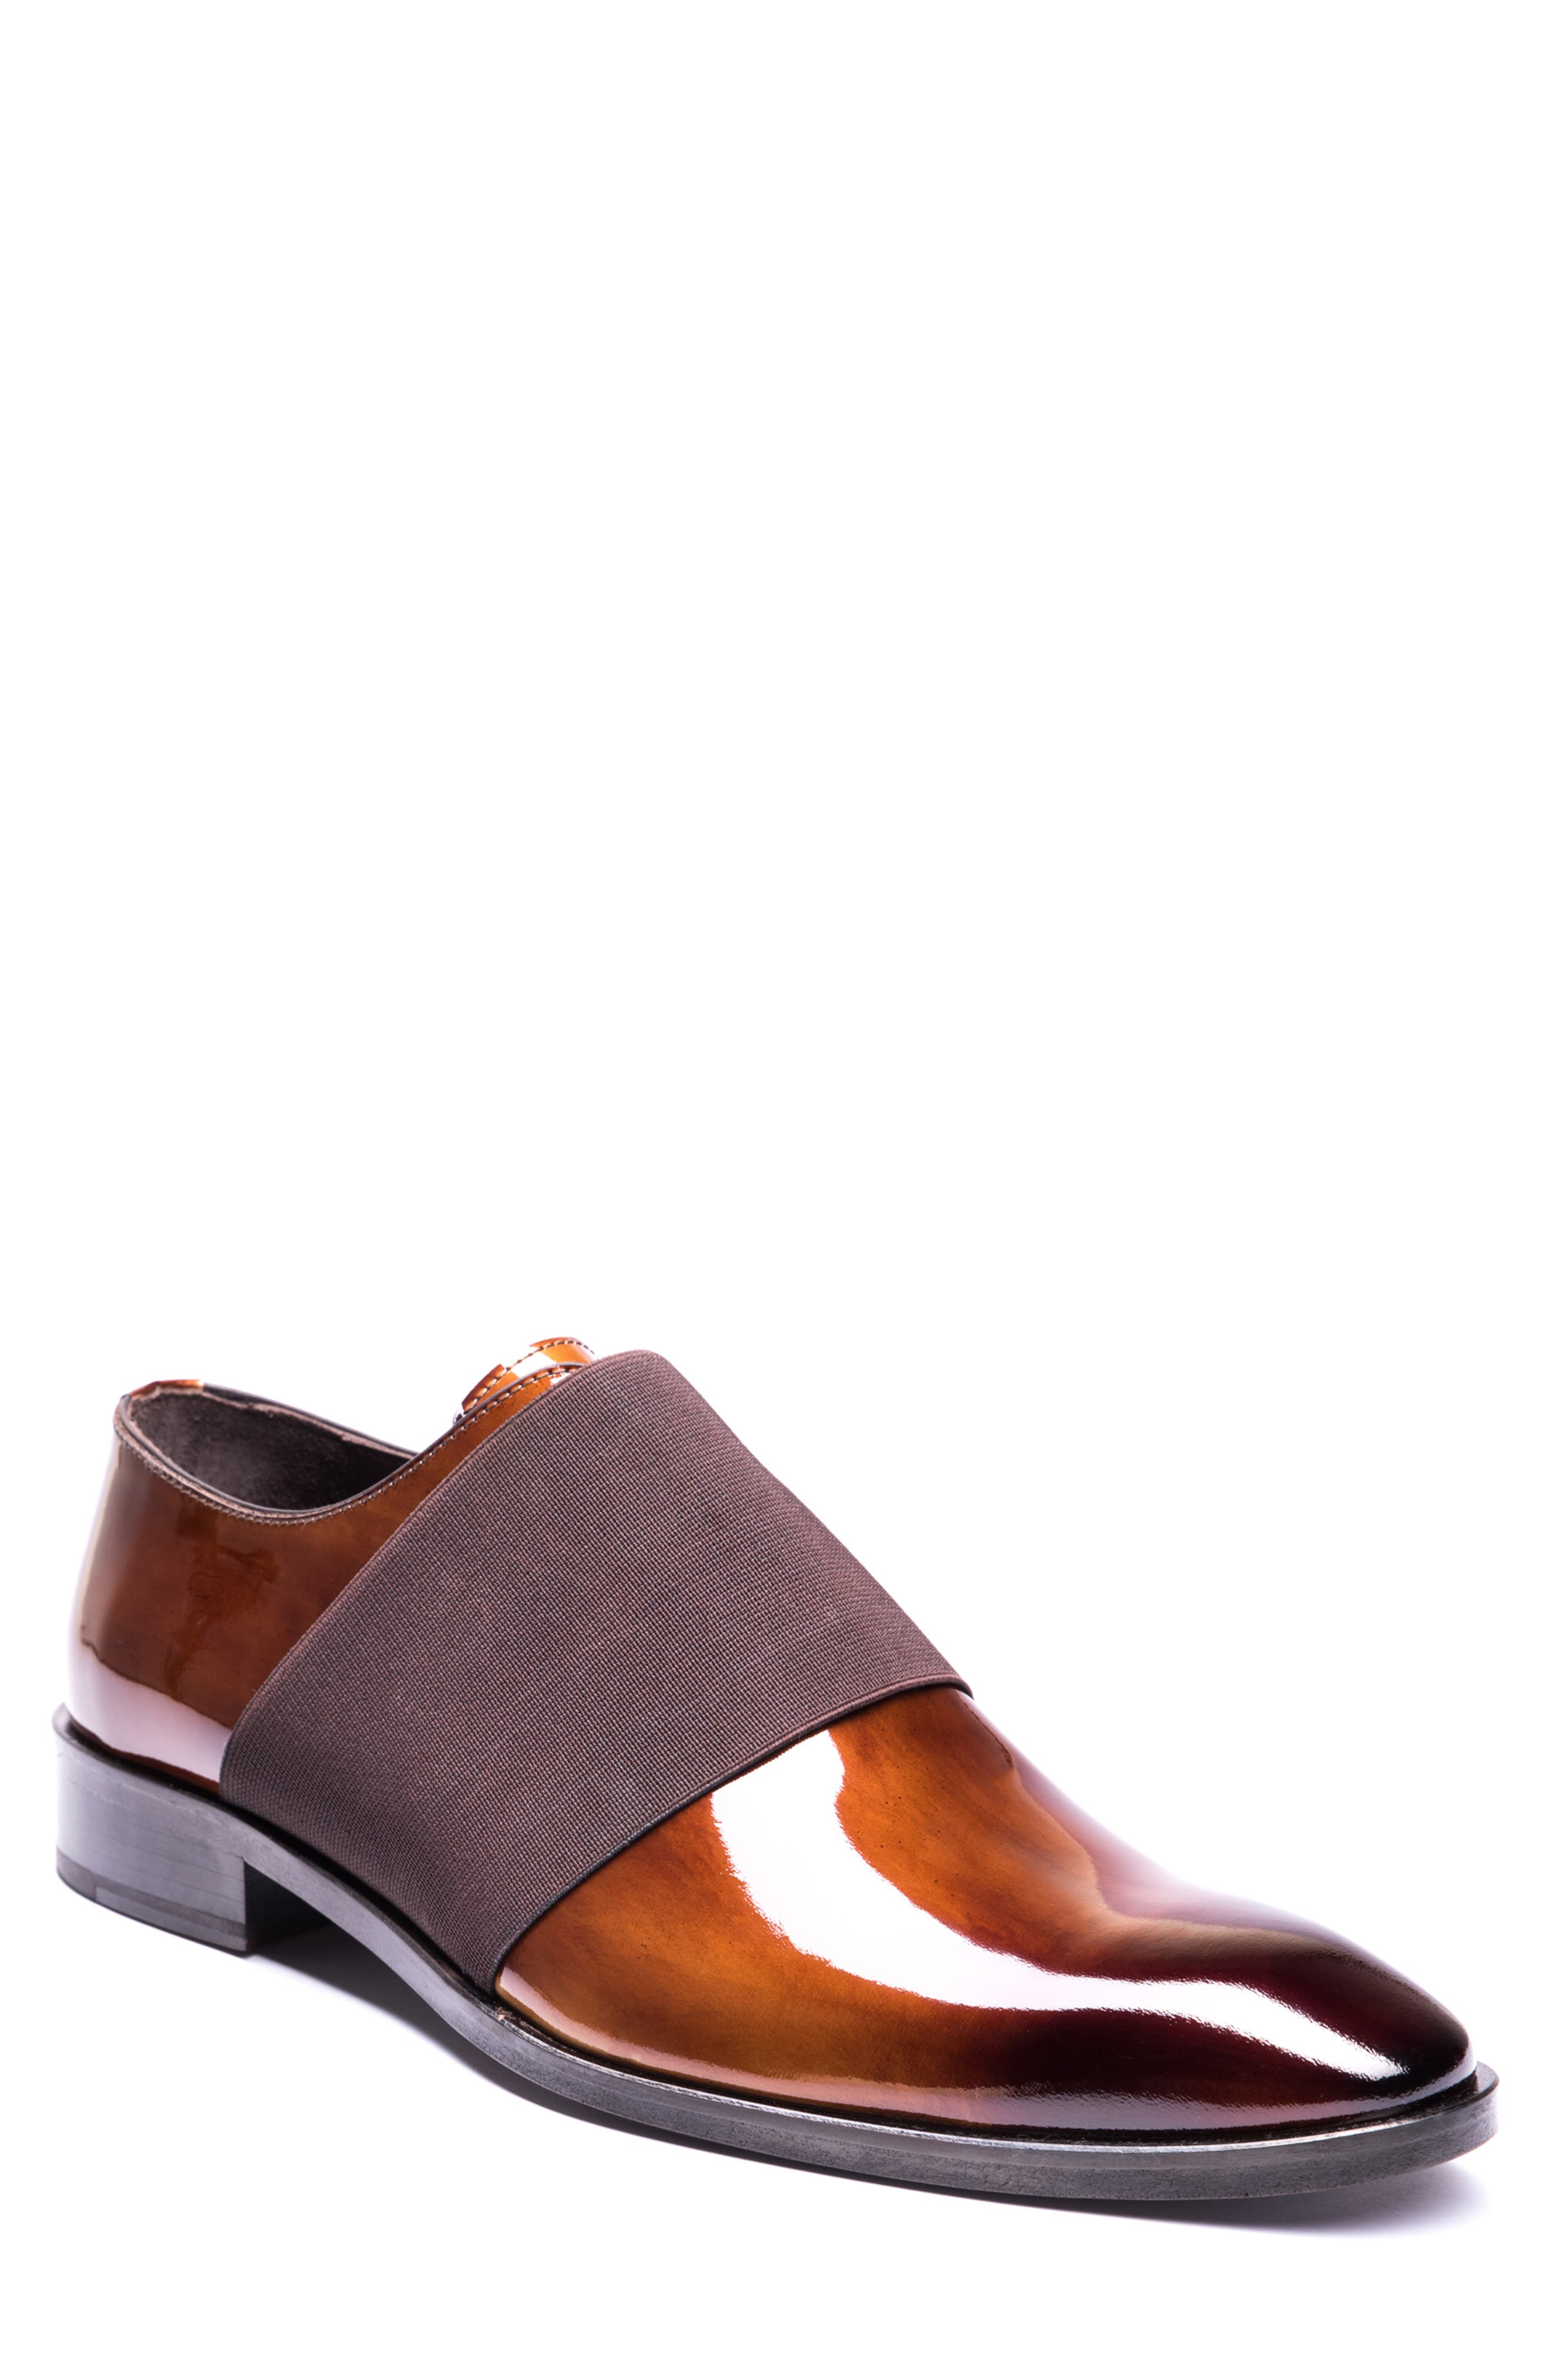 JARED LANG, Vincenzo Whole Cut Slip-On, Main thumbnail 1, color, BROWN LEATHER